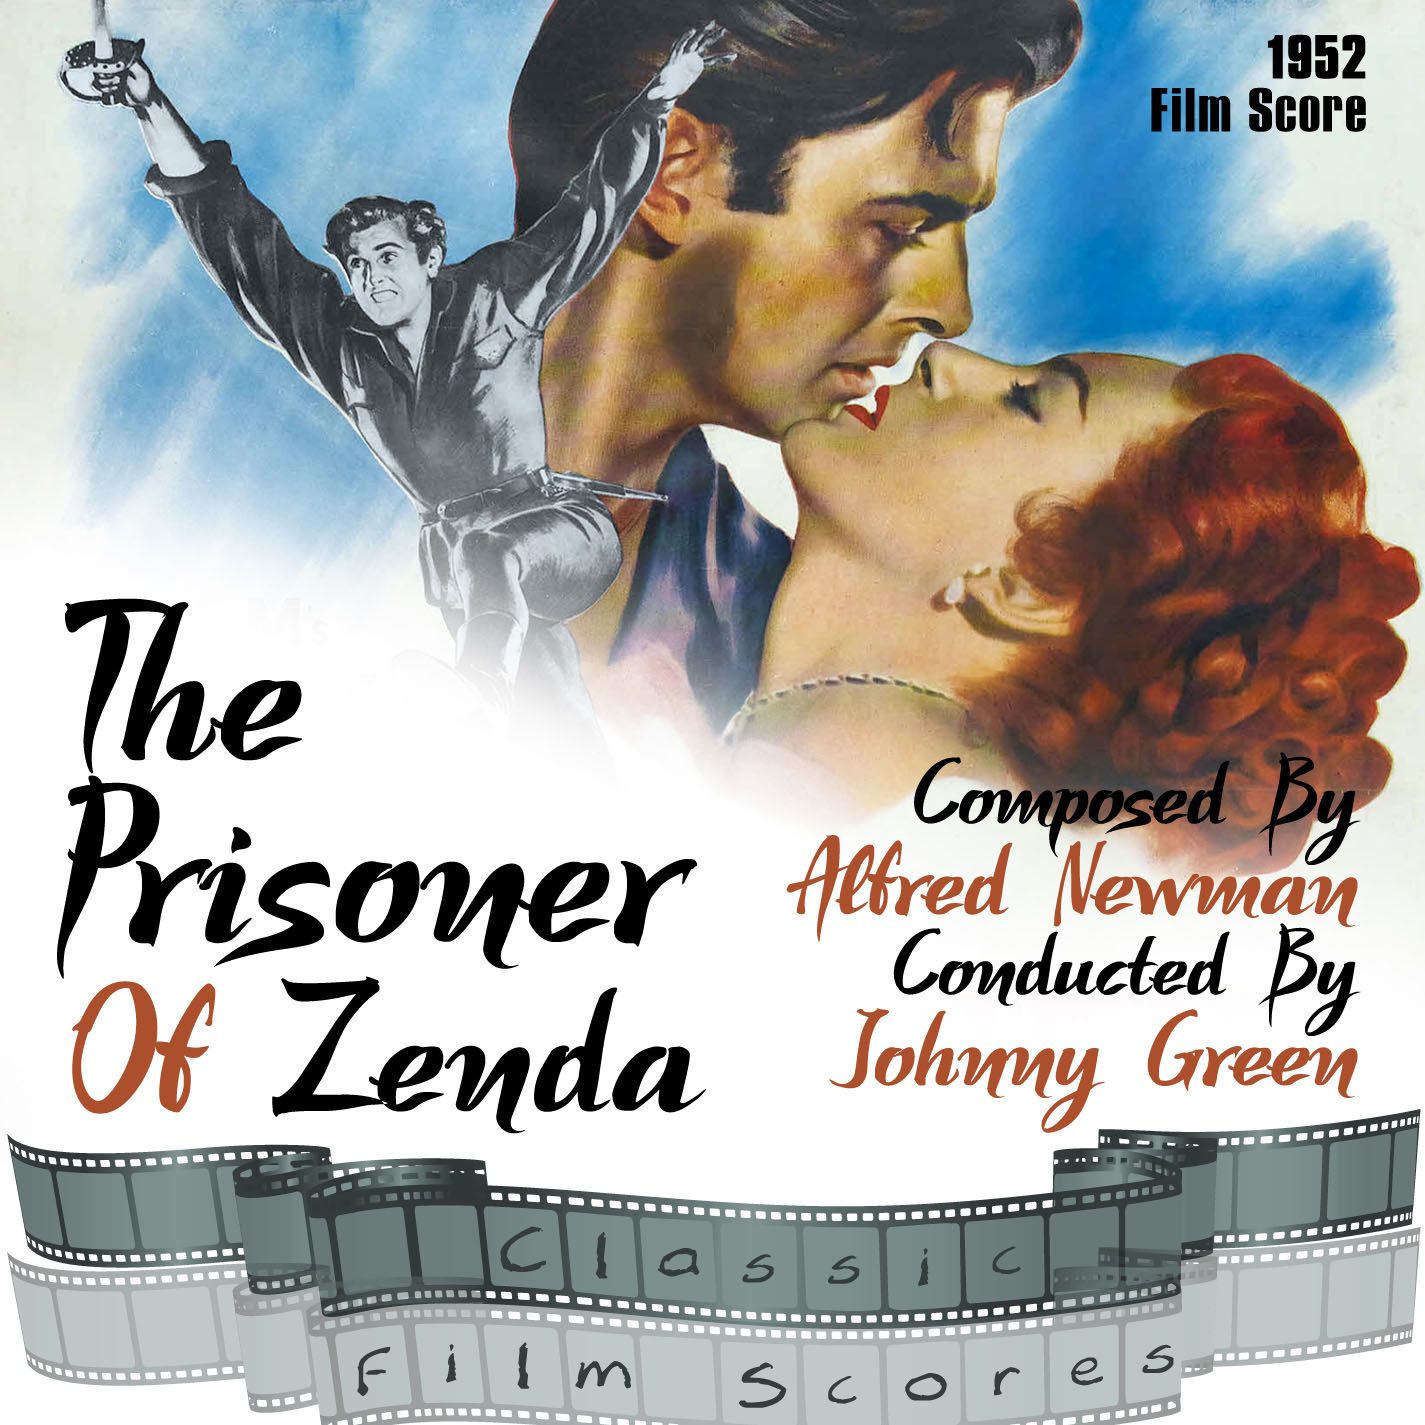 prisnor of zenda The prisoner of zenda is a 1952 film version of the classic novel of the same name by anthony hope and a remake of the famous 1937 film version this version was made.